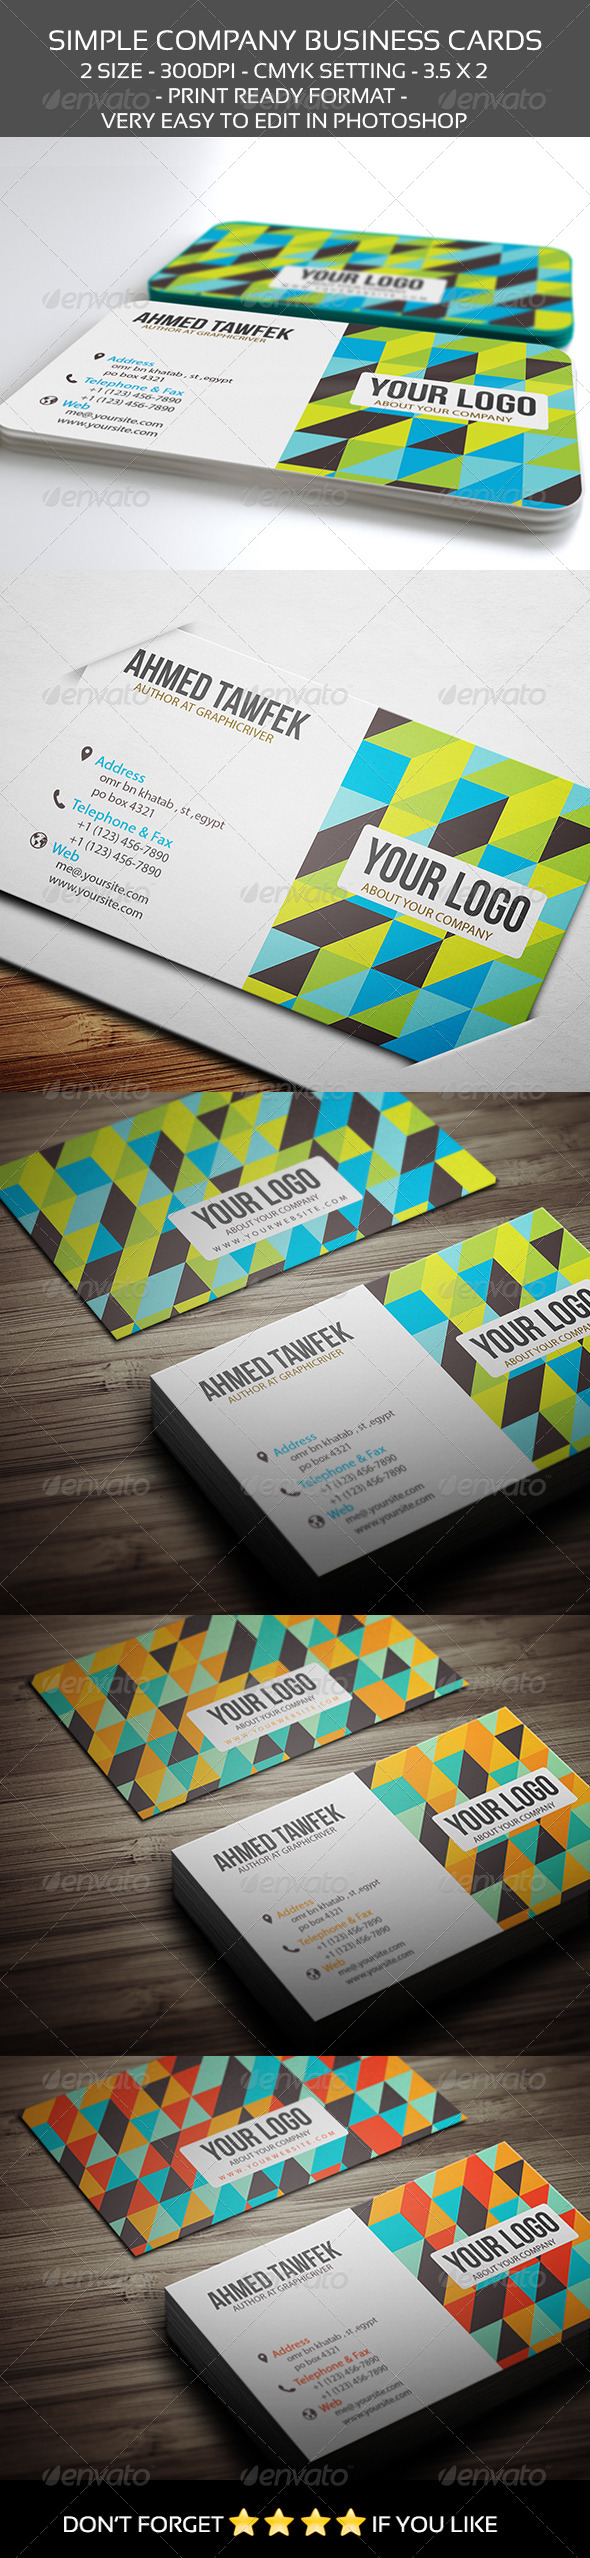 Simple Company Business Cards